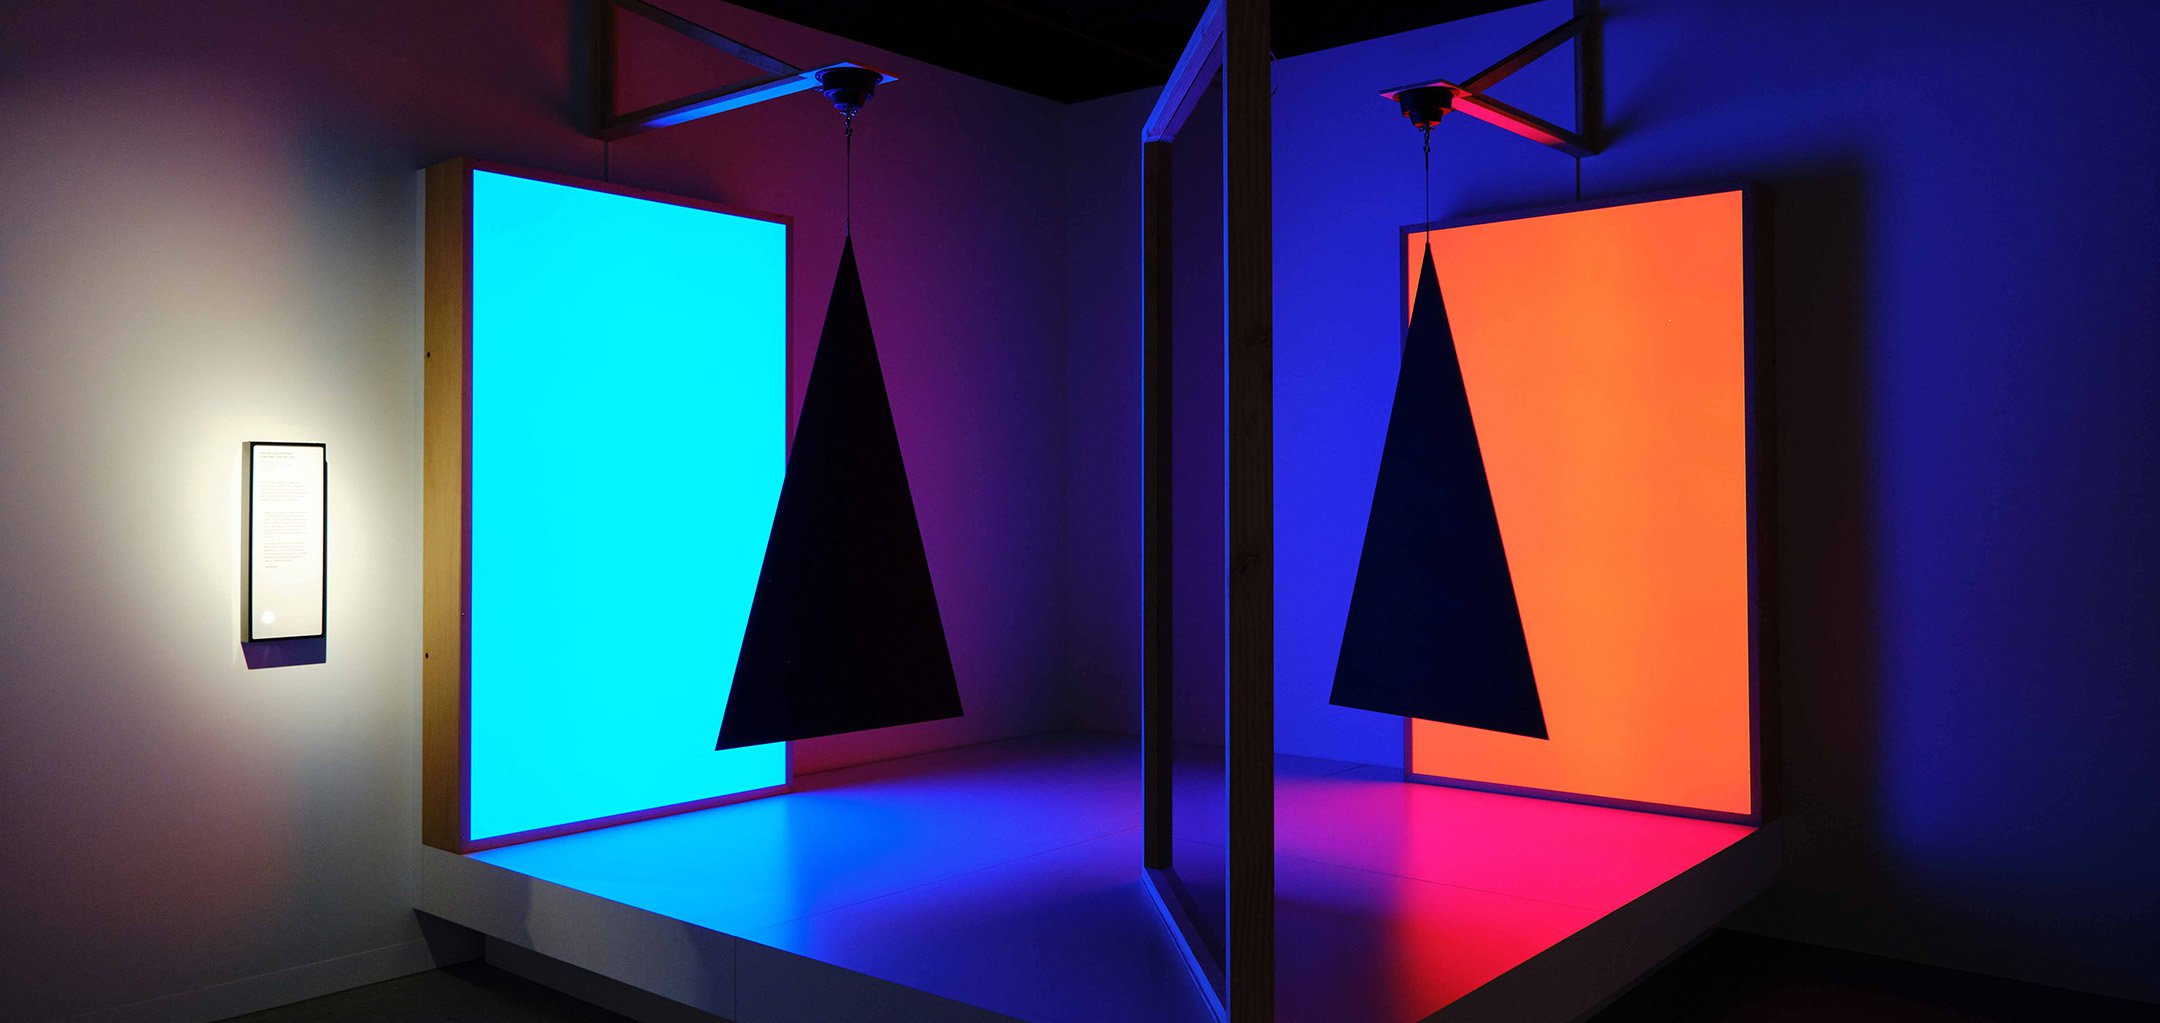 Pepper's Ghost, triangles, cyan and red, an art installation by Taree Mackenzie at ACMI